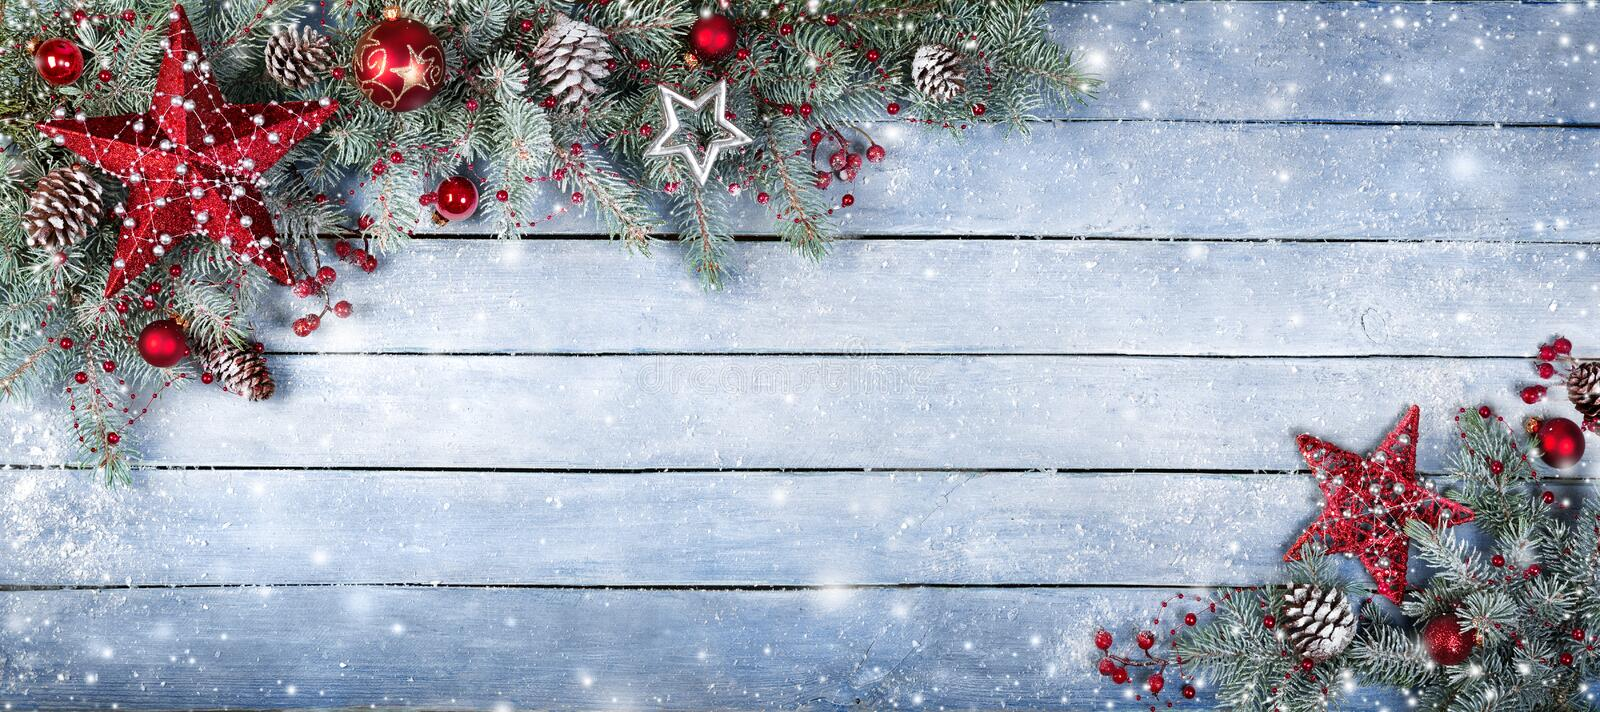 Christmas Fir Tree On Wooden Background. With Snowflakes stock images